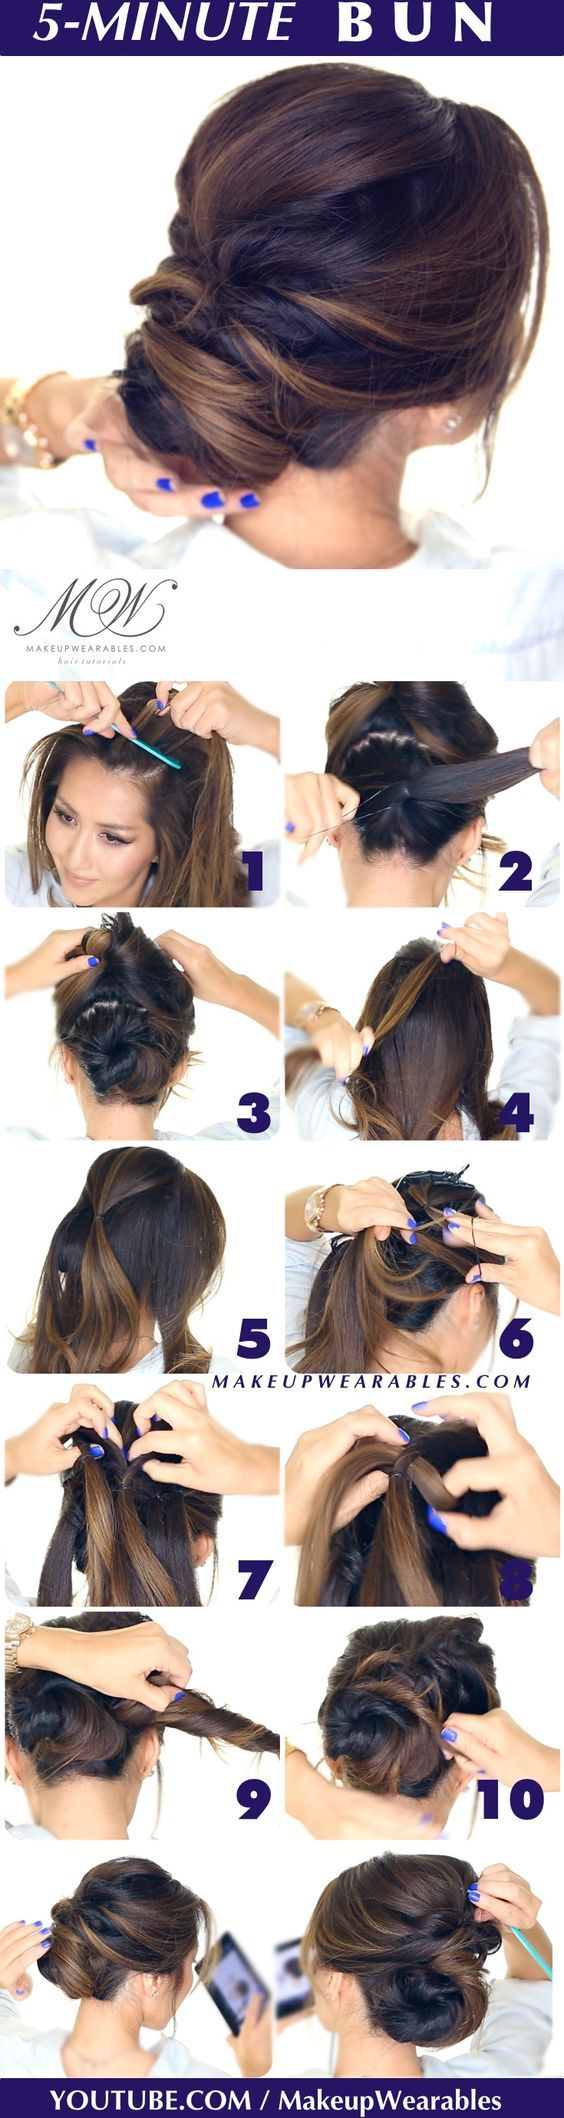 hair tutorial - easy romantic bun hairstyle JeweBlog